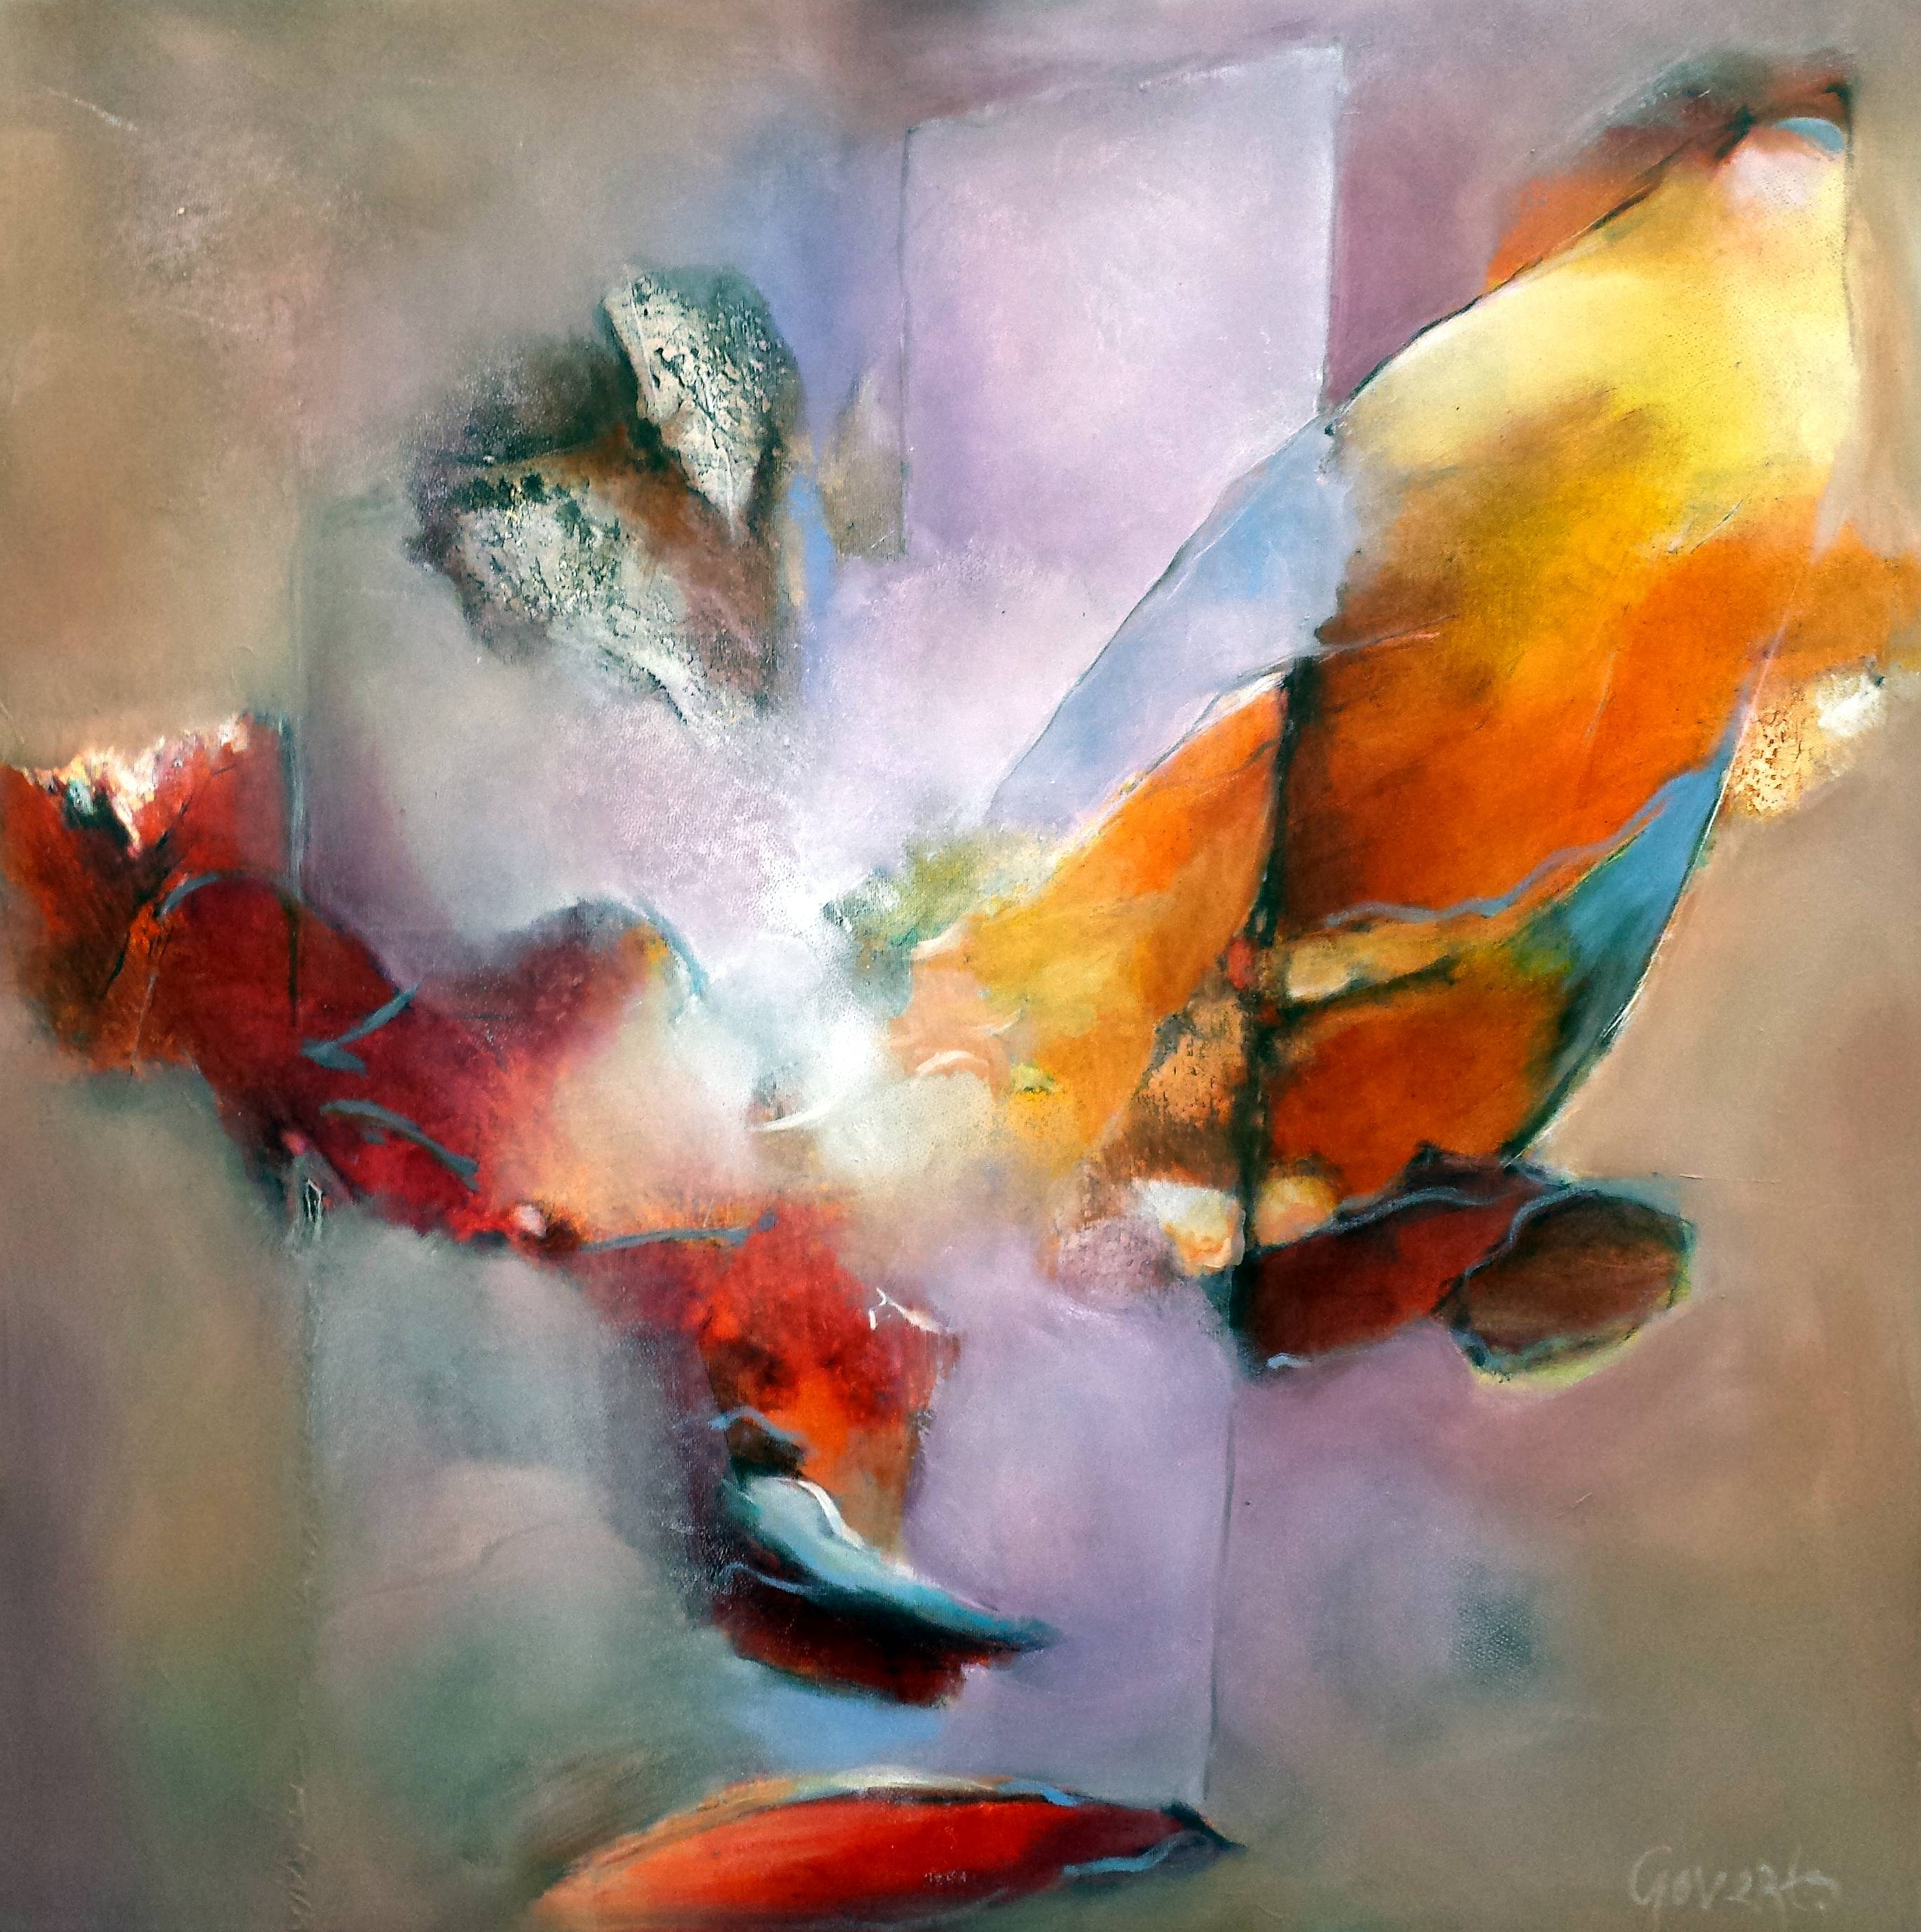 casa-creativa-90x90cm, oil on canvas